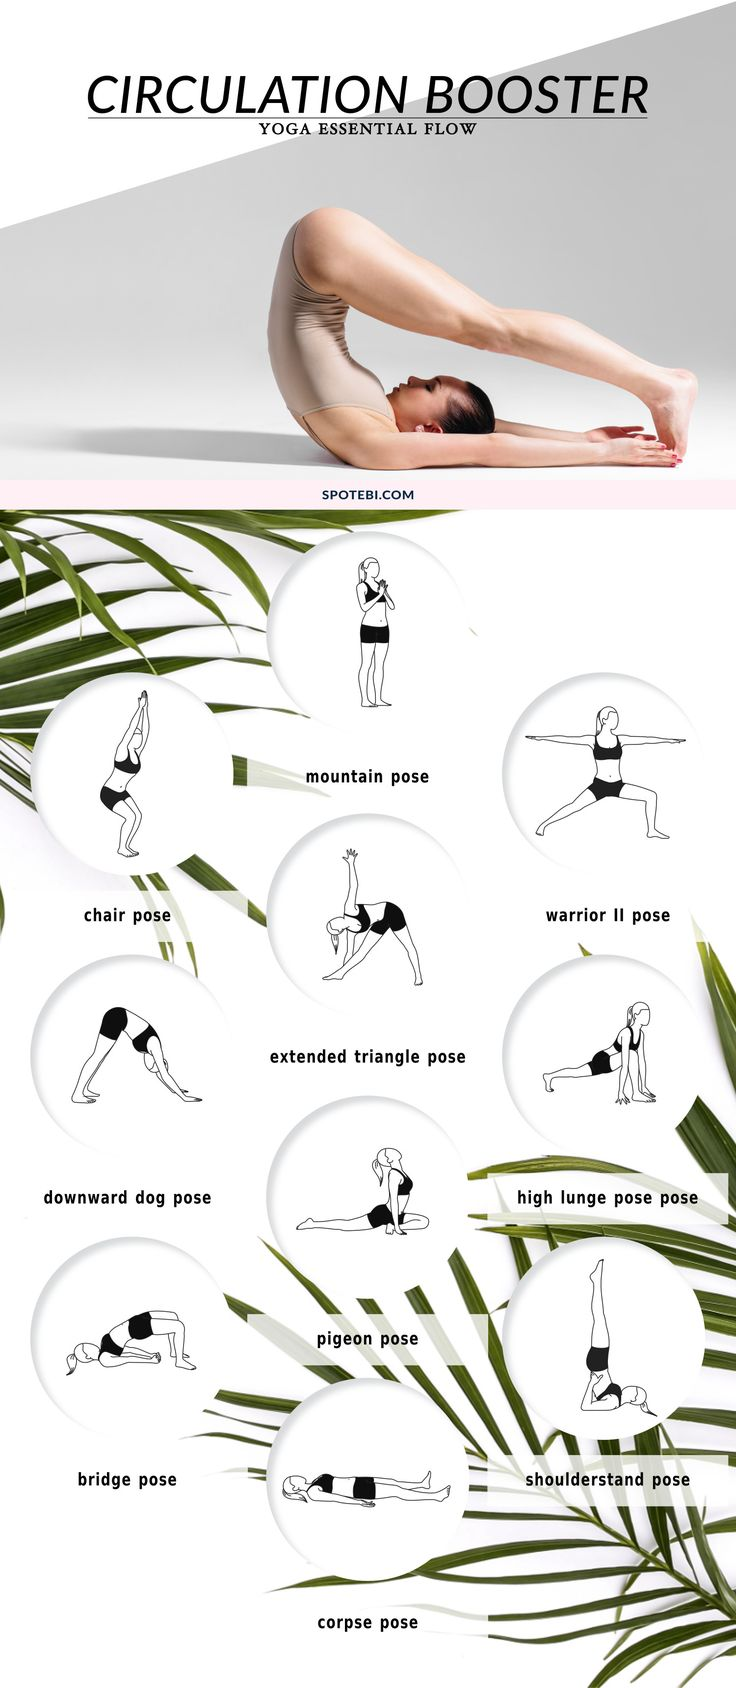 If you spend a lot of time sitting down and are worried about how that can affect your health, just squeeze in our Circulation Booster Sequence in one of your sitting breaks, and allow your body to heal and repair. This 12 minute yoga essential flow is designed to improve blood circulation, boost your immune system and reduce stress levels! http://www.spotebi.com/yoga-sequences/circulation-booster/